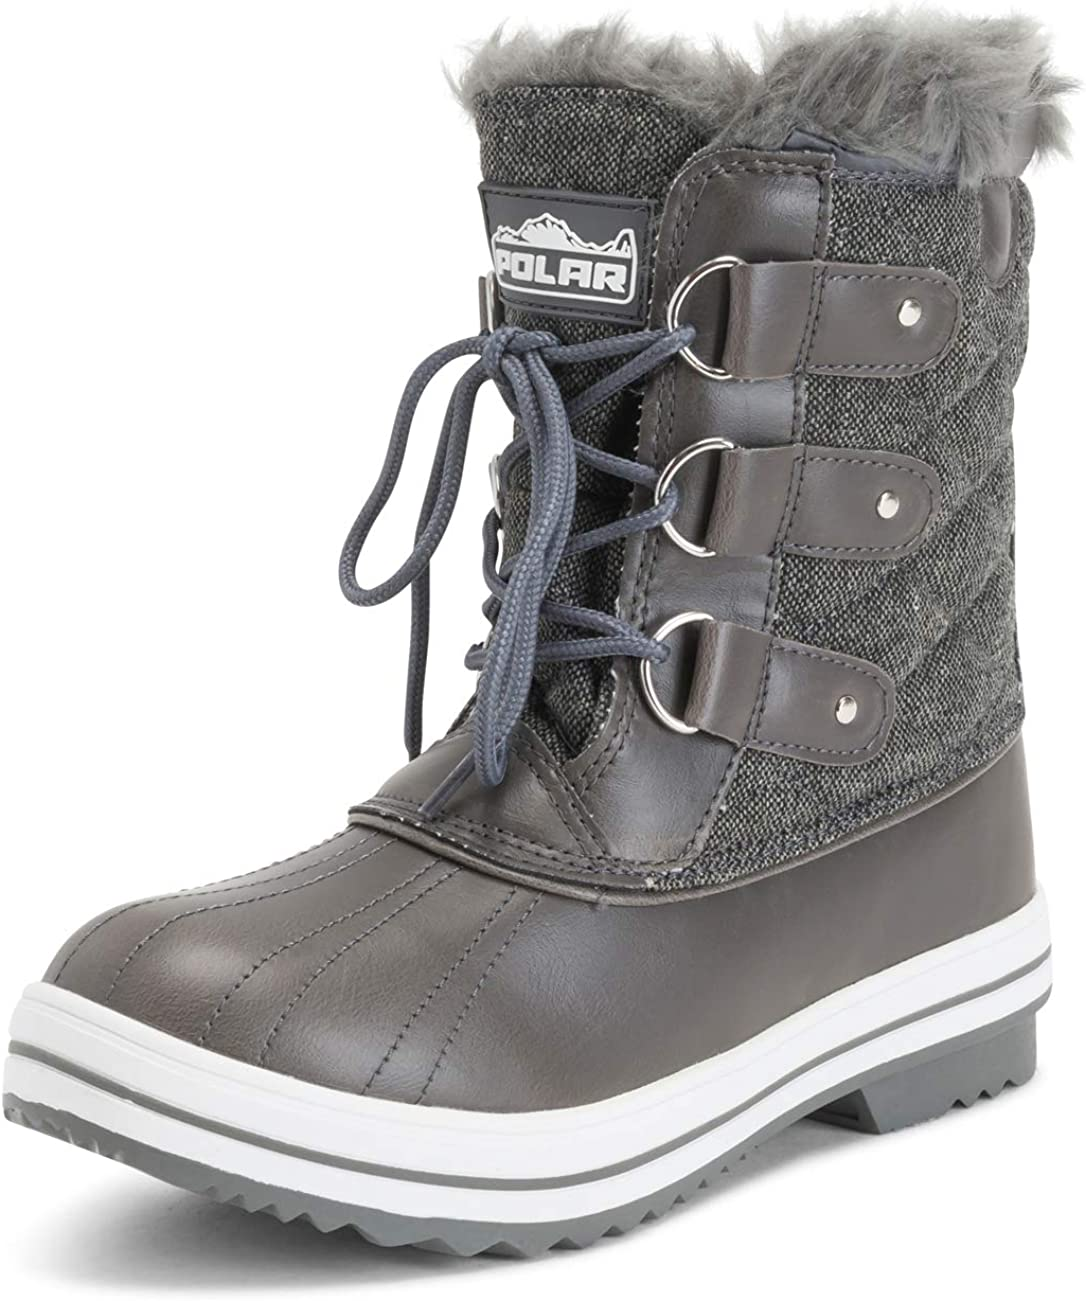 | Womens Snow Boot Quilted Short Winter Snow Rain Warm Waterproof Boots | Snow Boots